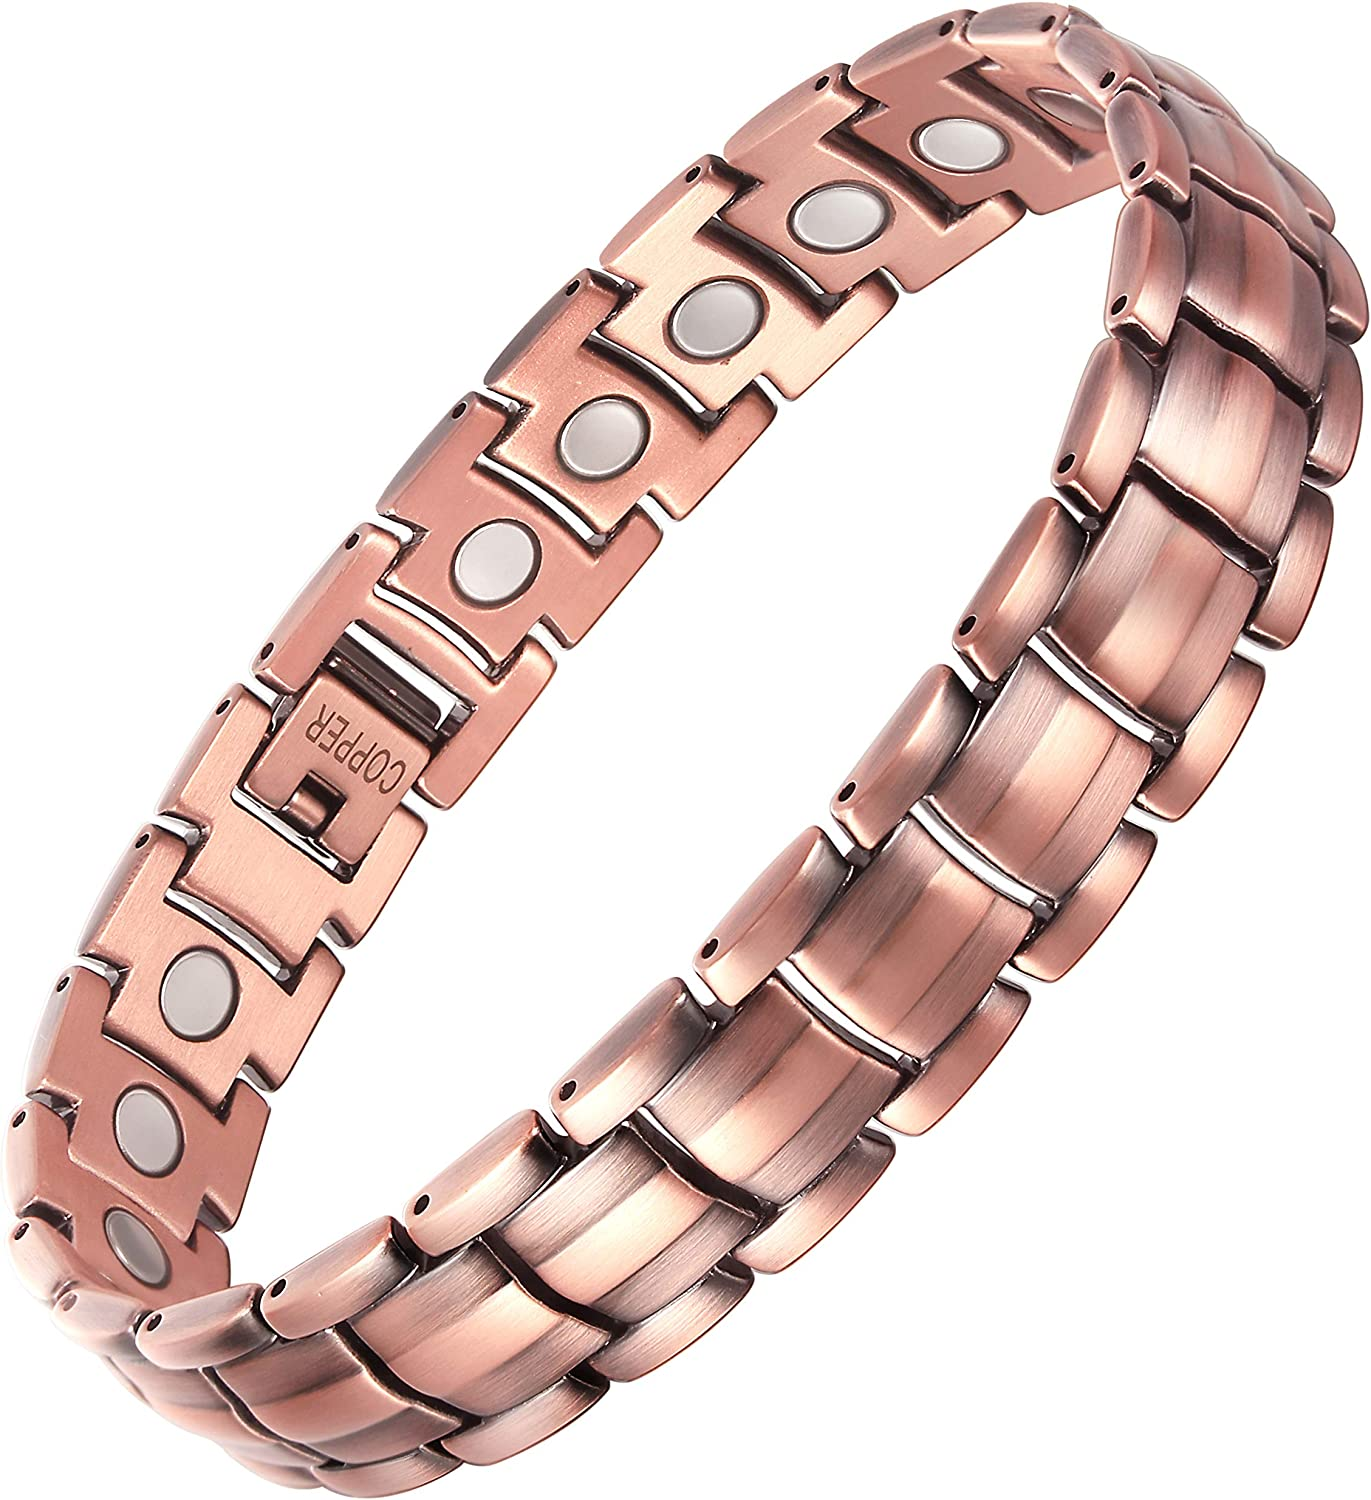 VITEROU Mens Magnetic 99.95% Pure Copper Therapy Bracelet with High Powered Magnets for Arthritis Pain Relief,3500 Gauss,8.5 Inches